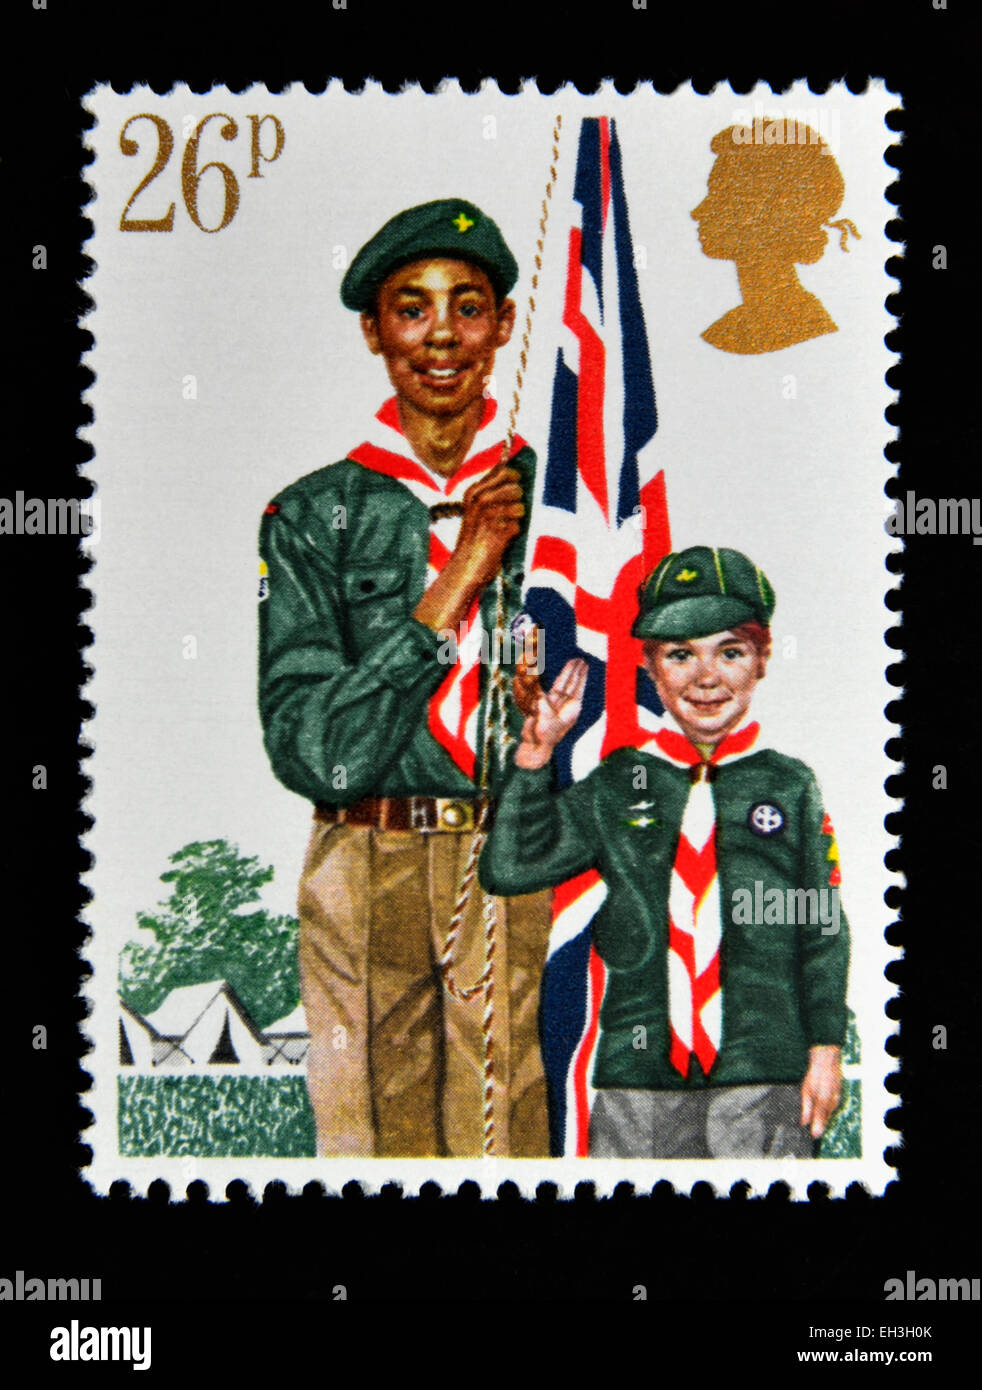 Postage stamp. Great Britain. Queen Elizabeth II. 1982. Youth Organisations. Boy Scout Movement. - Stock Image